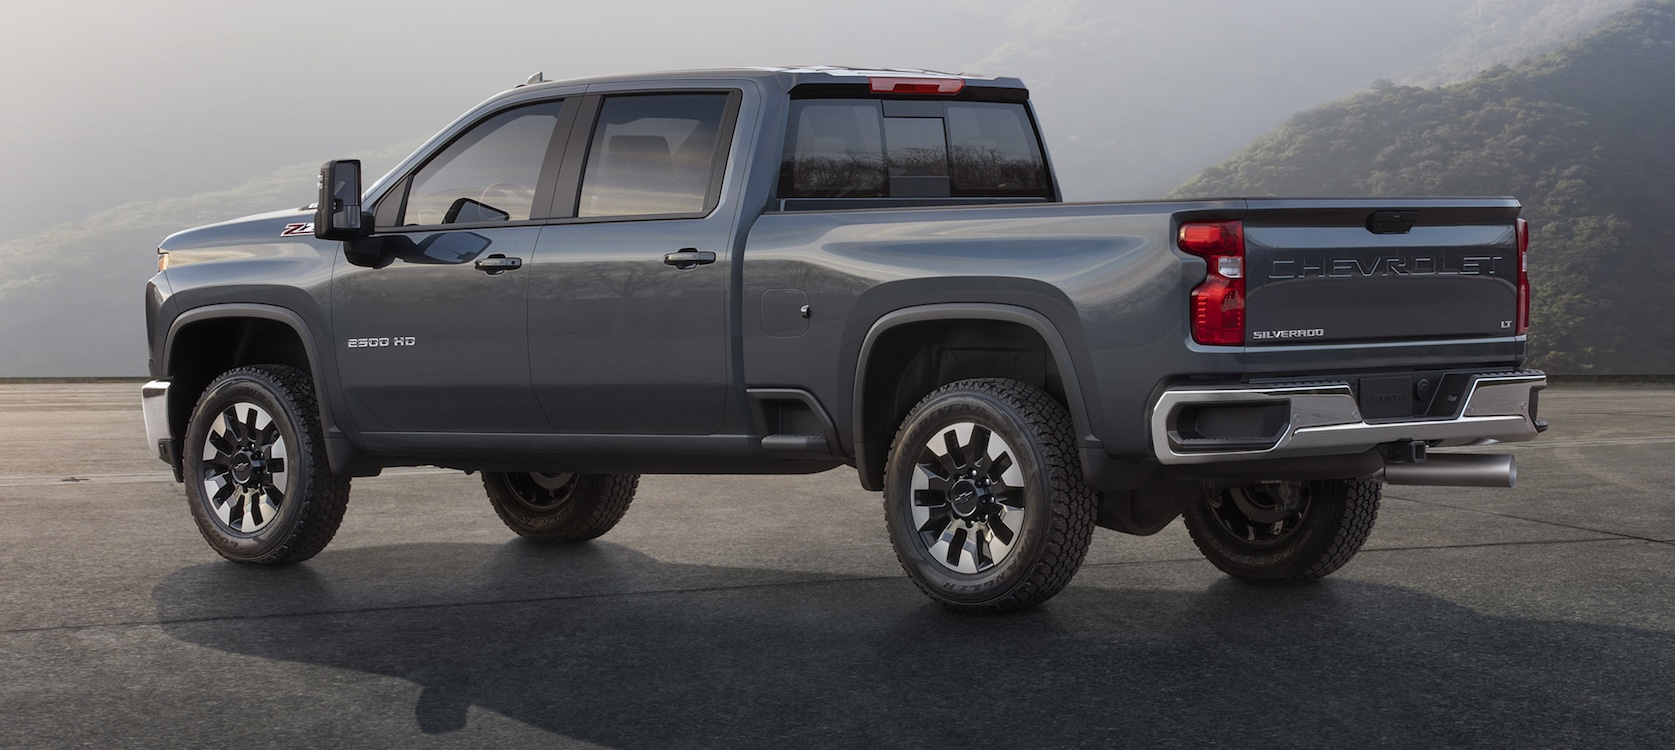 New Chevy Truck >> Chevy Rolls Out New Silverado Hd Thedetroitbureau Com